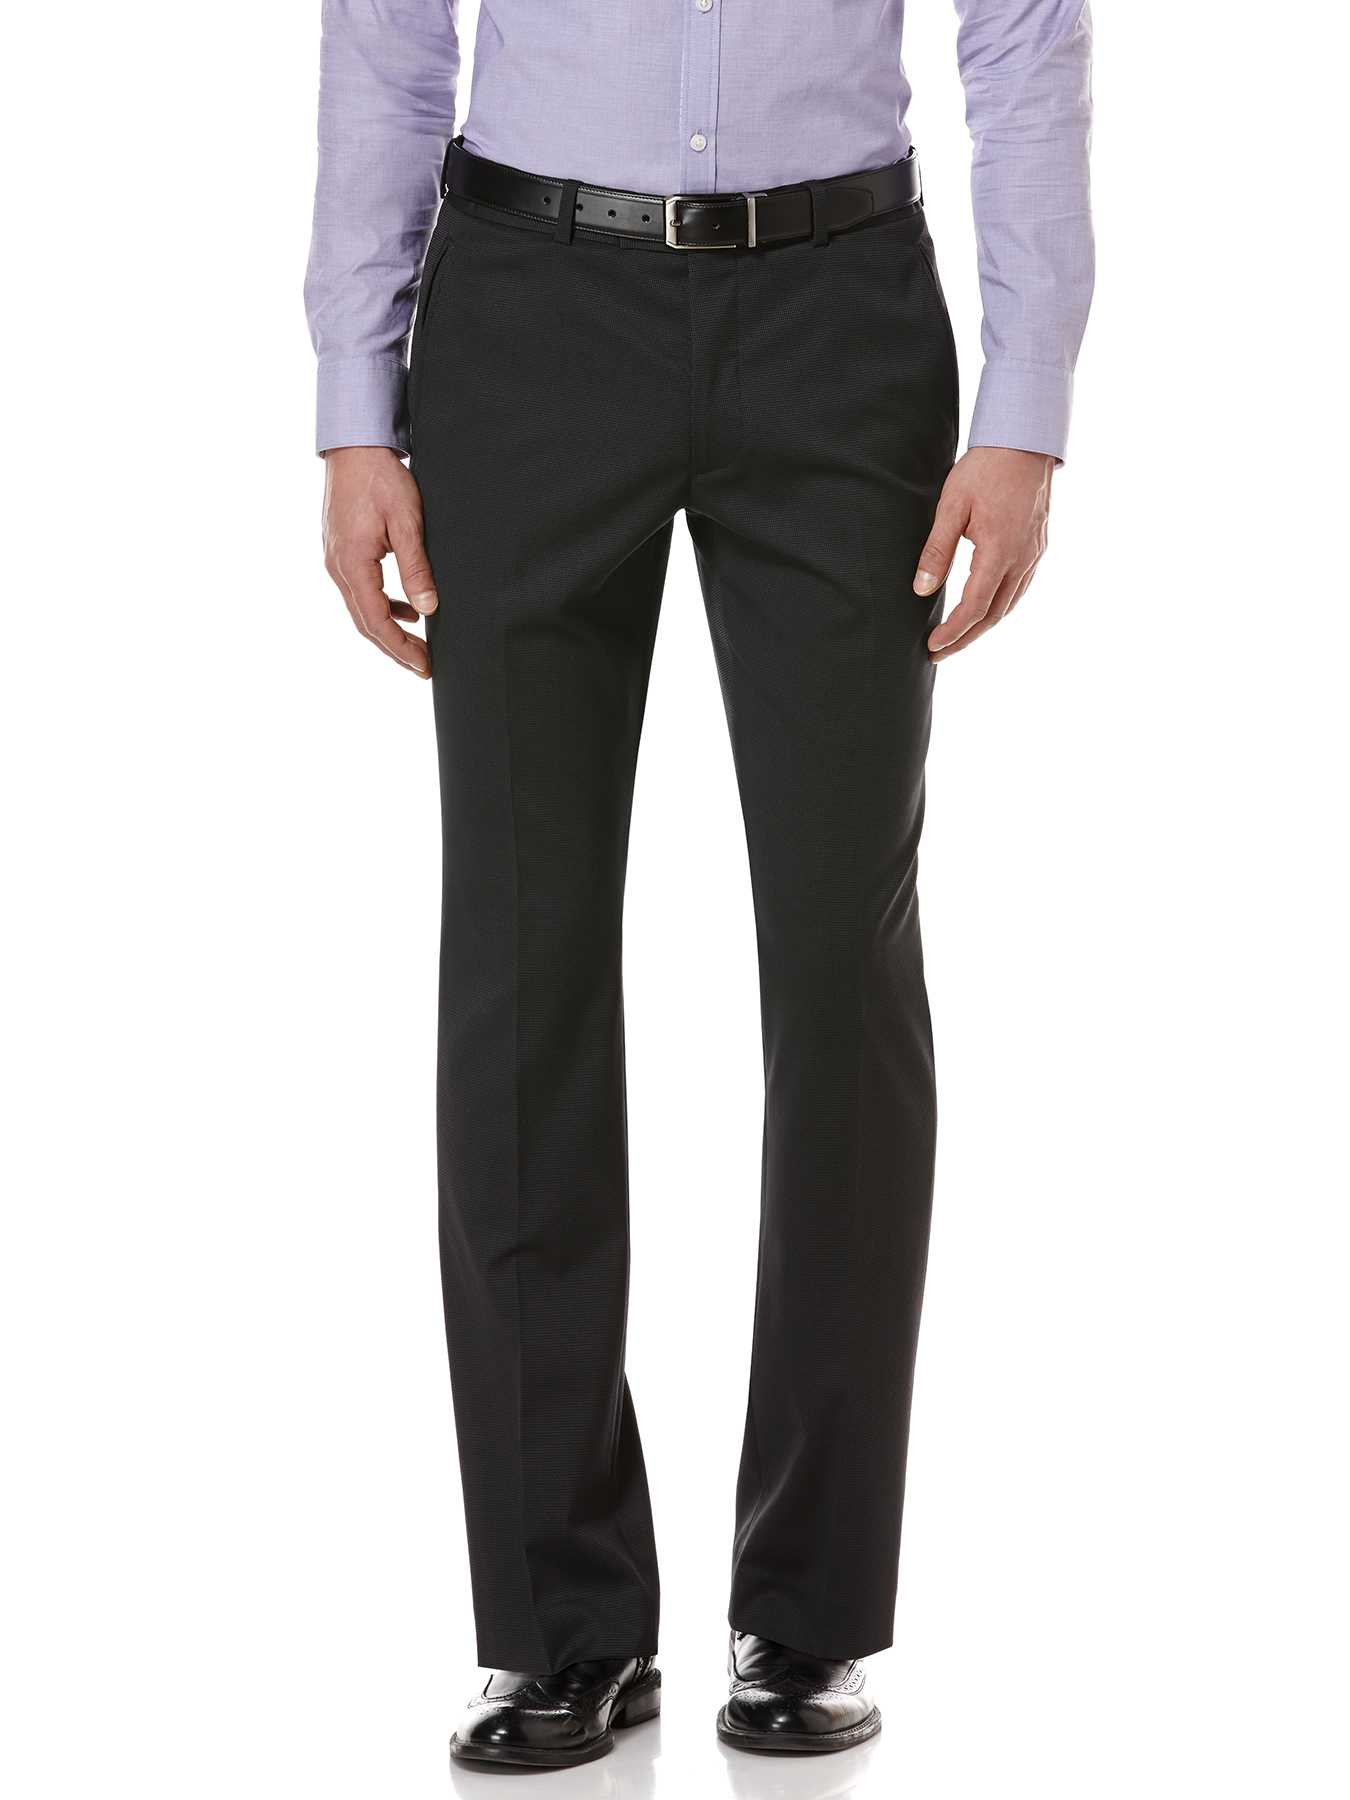 Perry Ellis Black Pindot Suit Pant